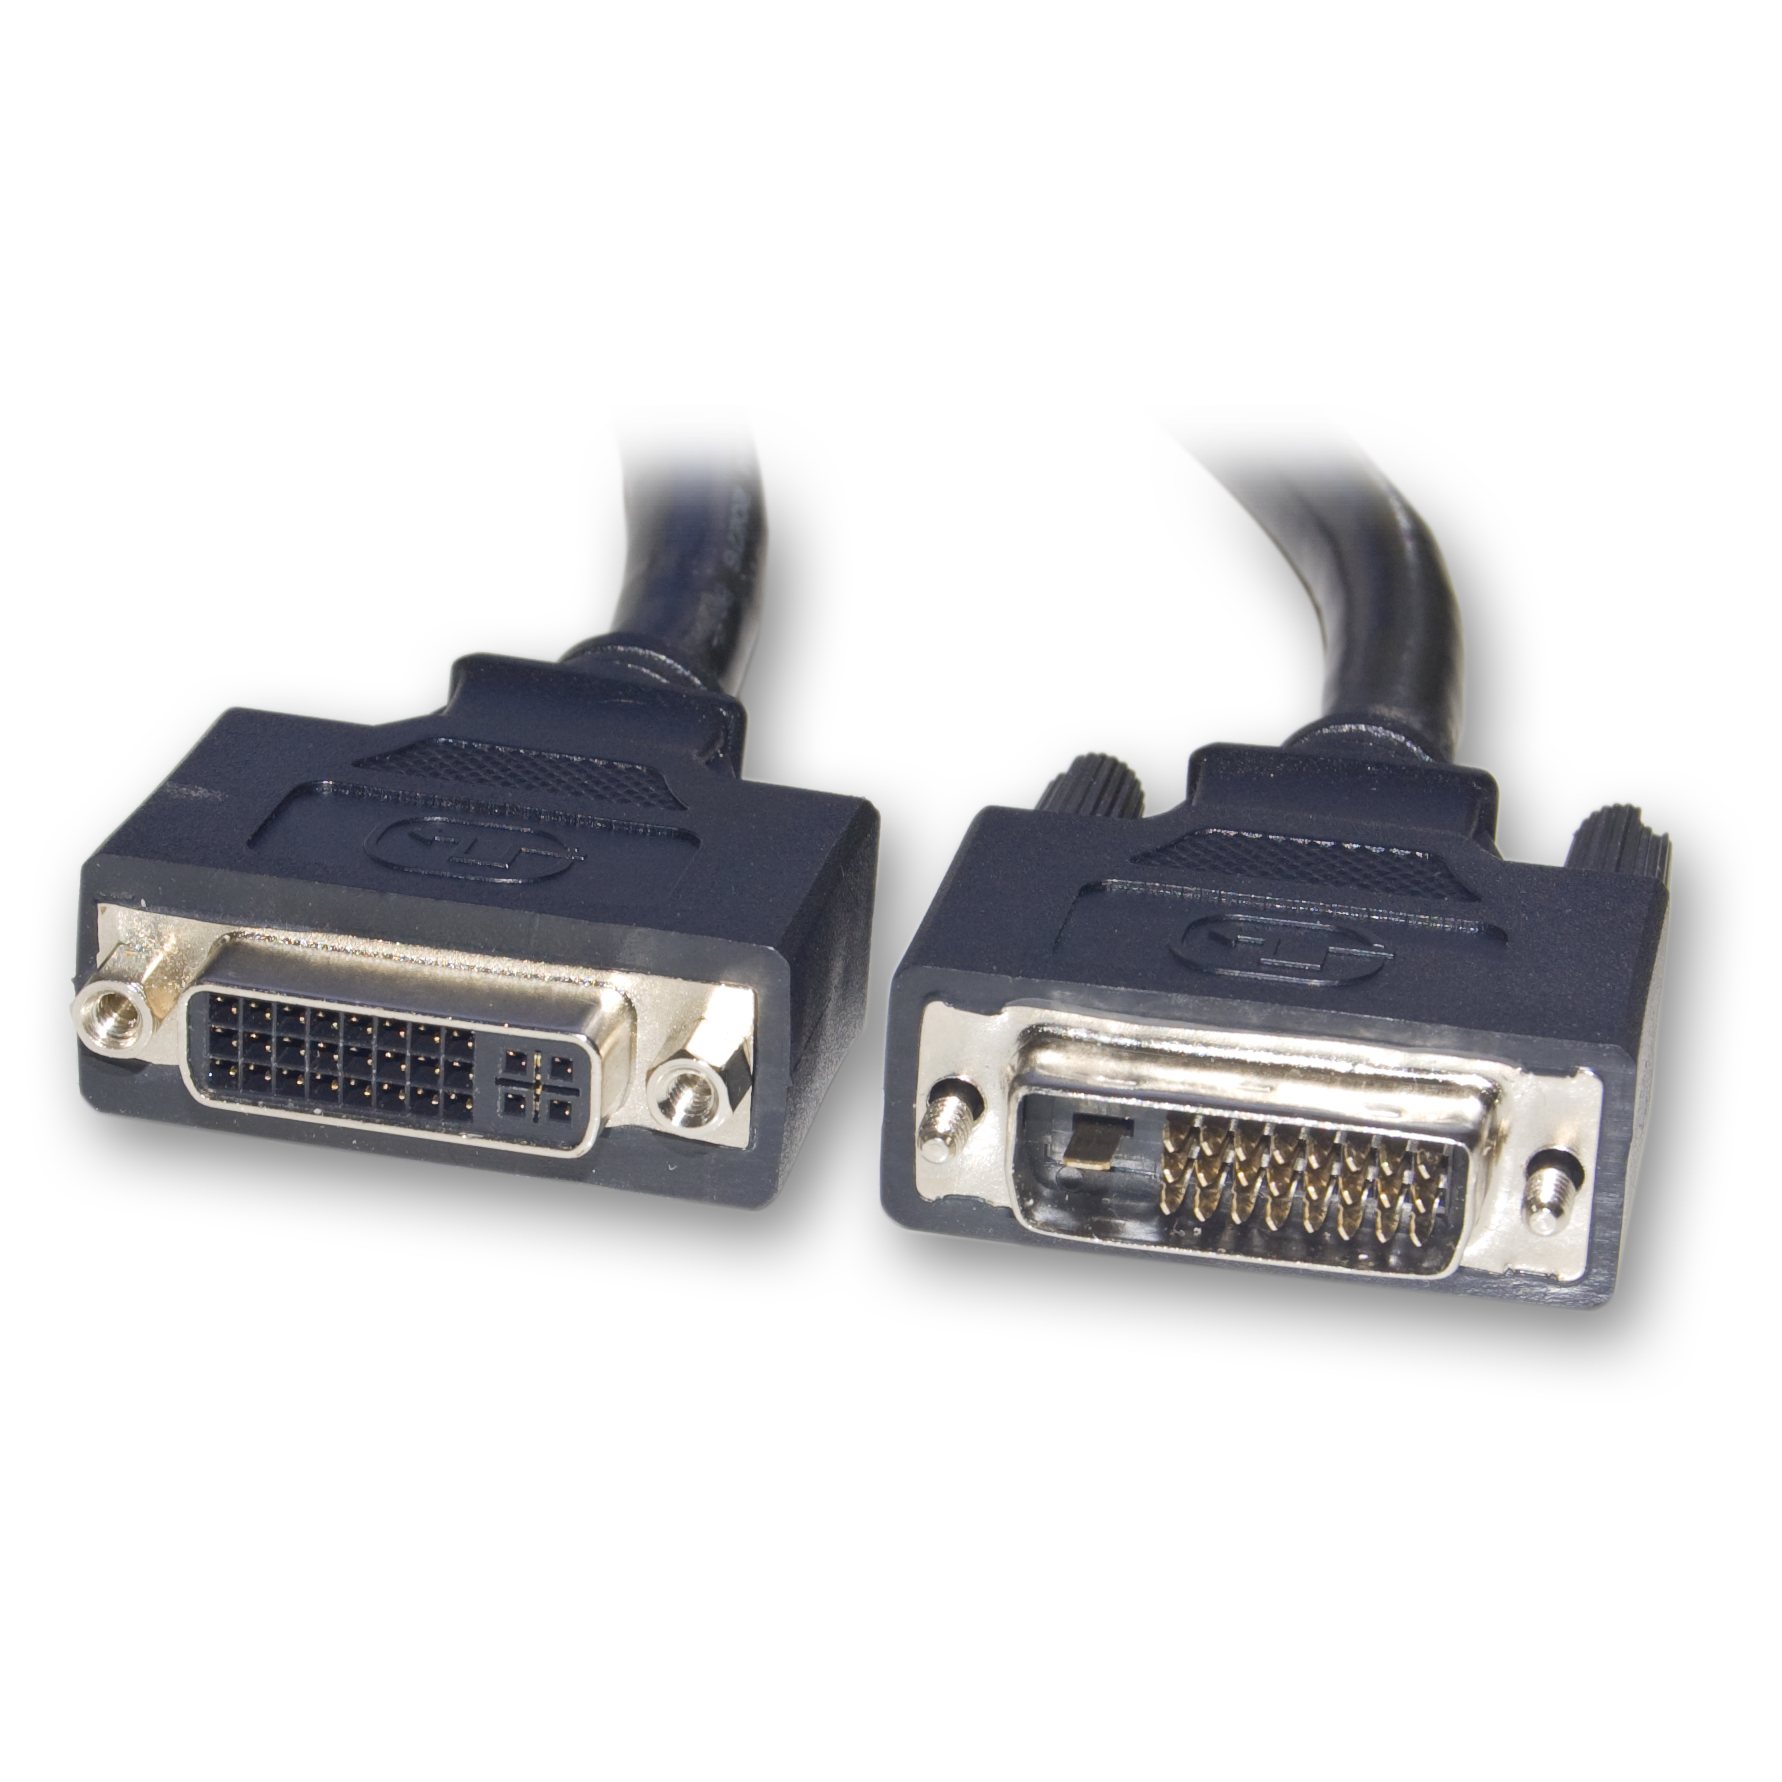 Dvi D Cable : Meter black dvi d dual link video extension cable